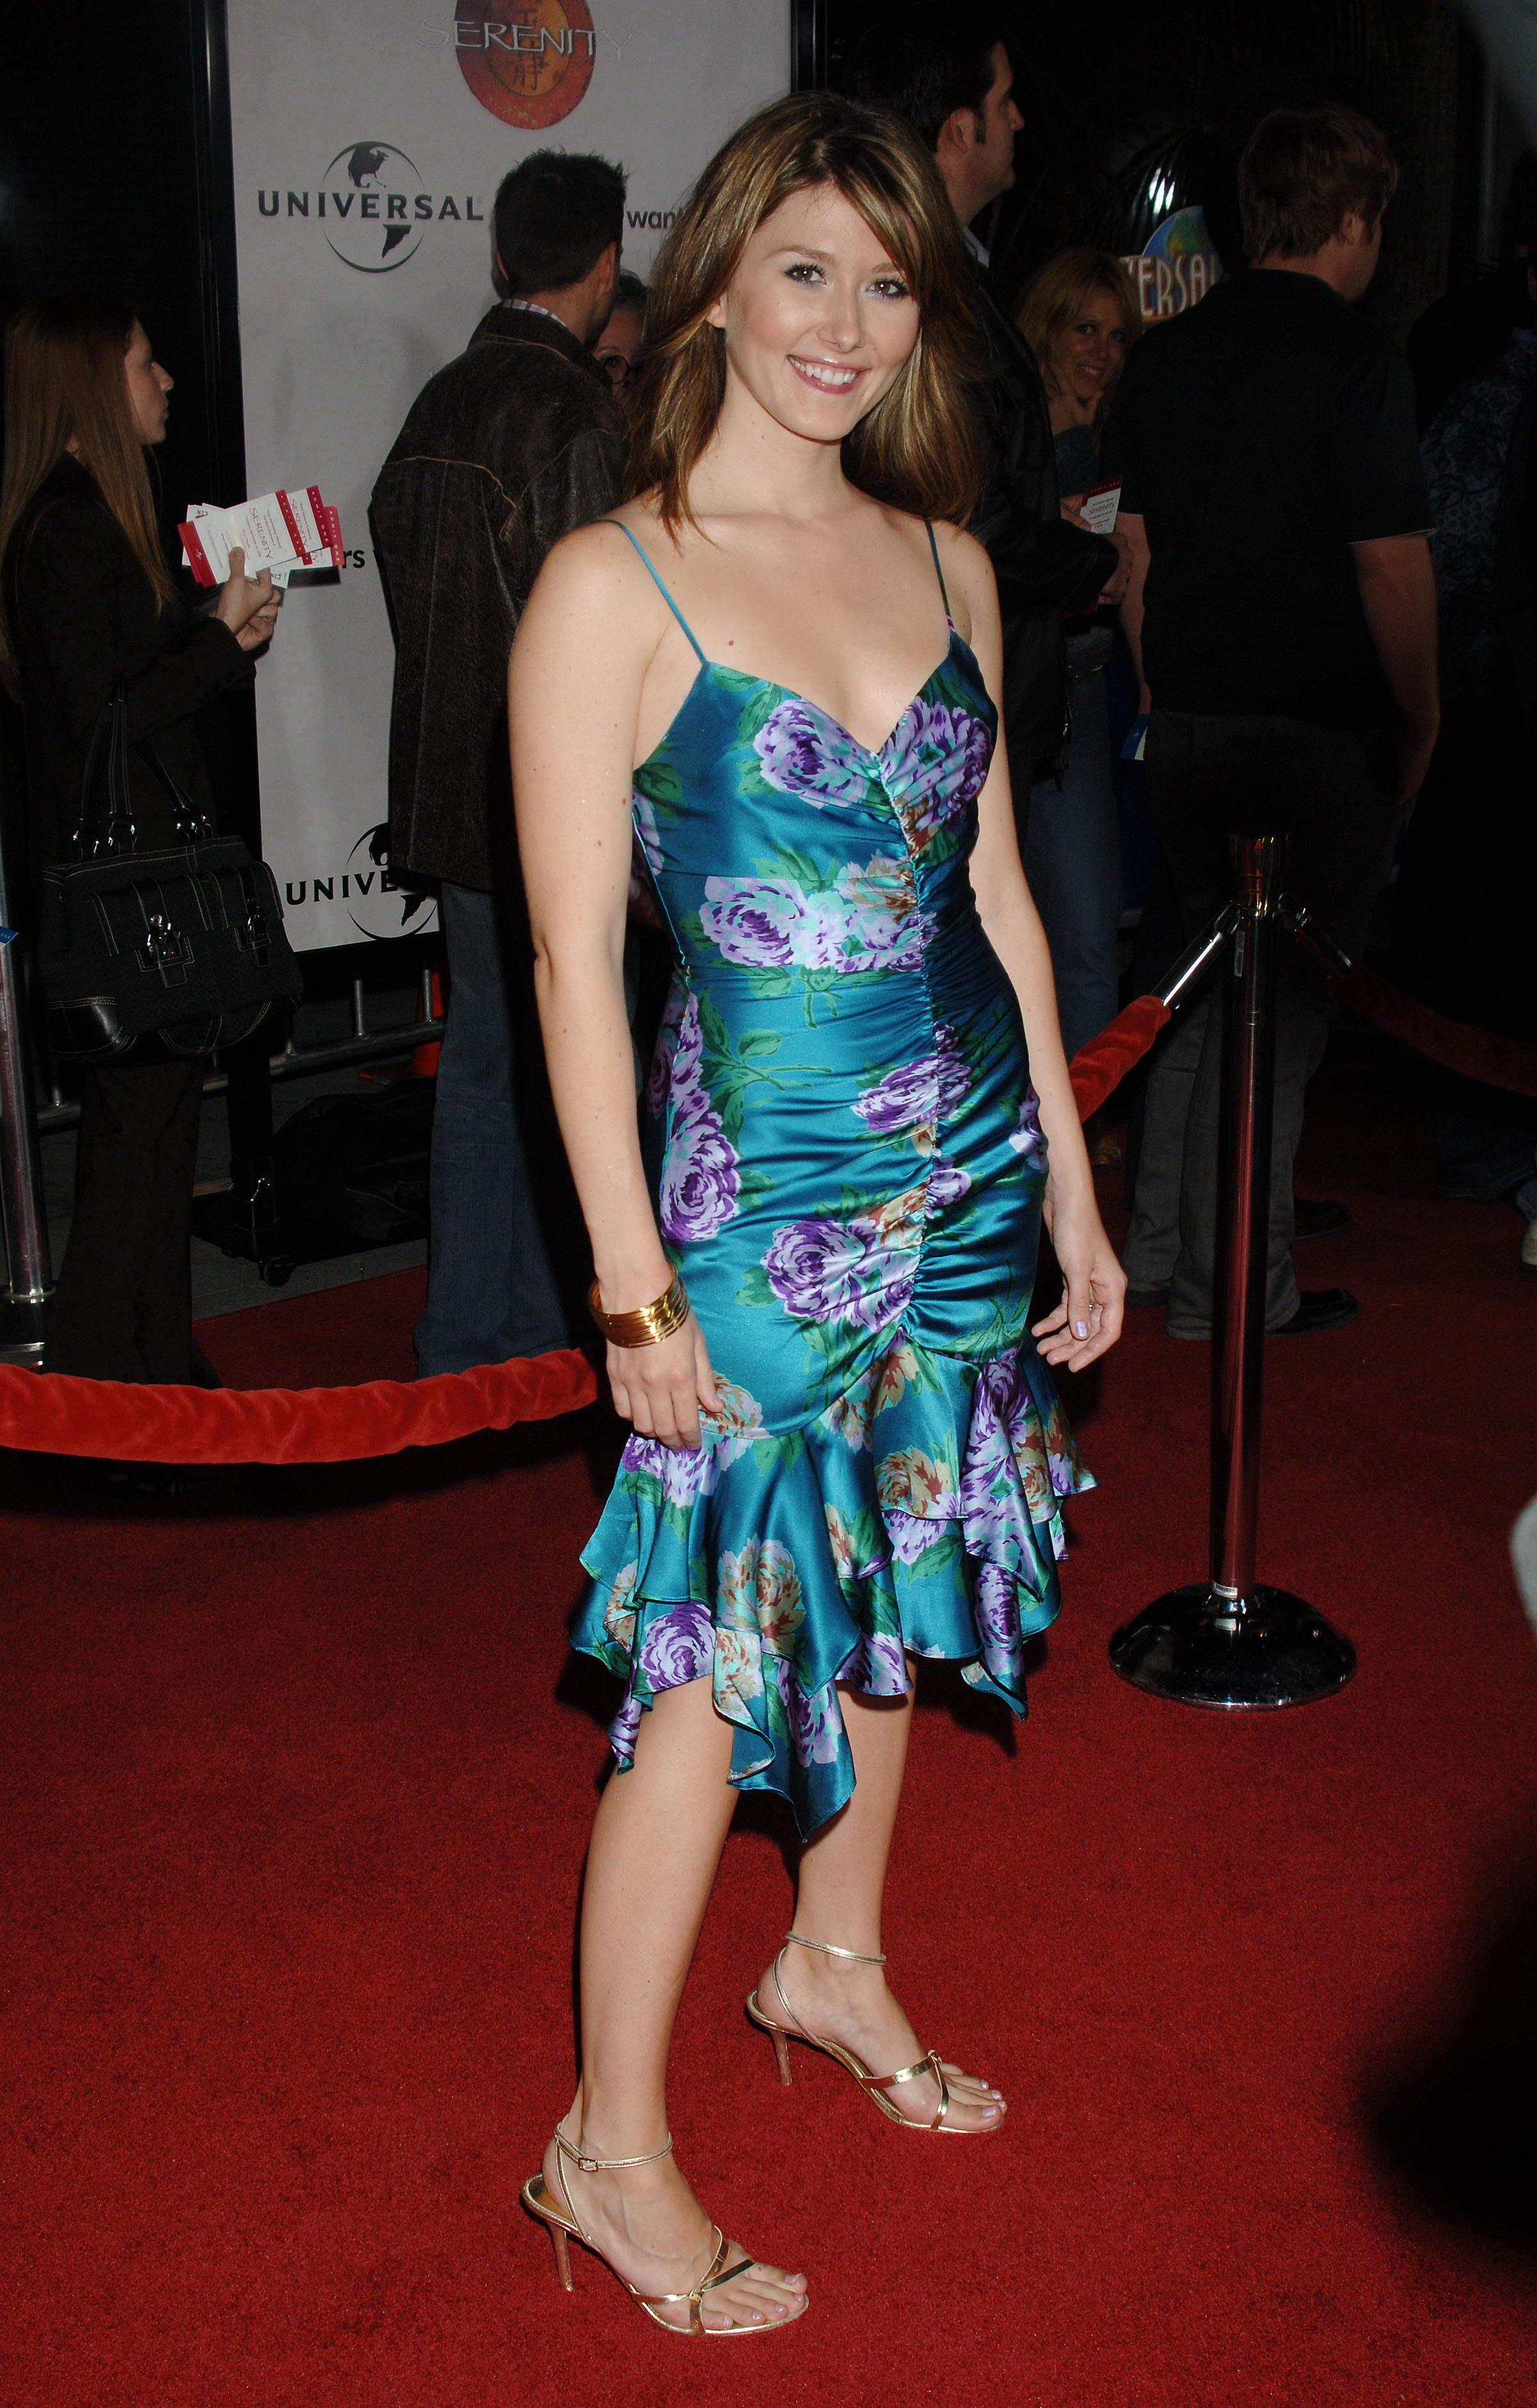 Celebrites Jewel Staite naked (26 photos), Pussy, Cleavage, Boobs, lingerie 2020